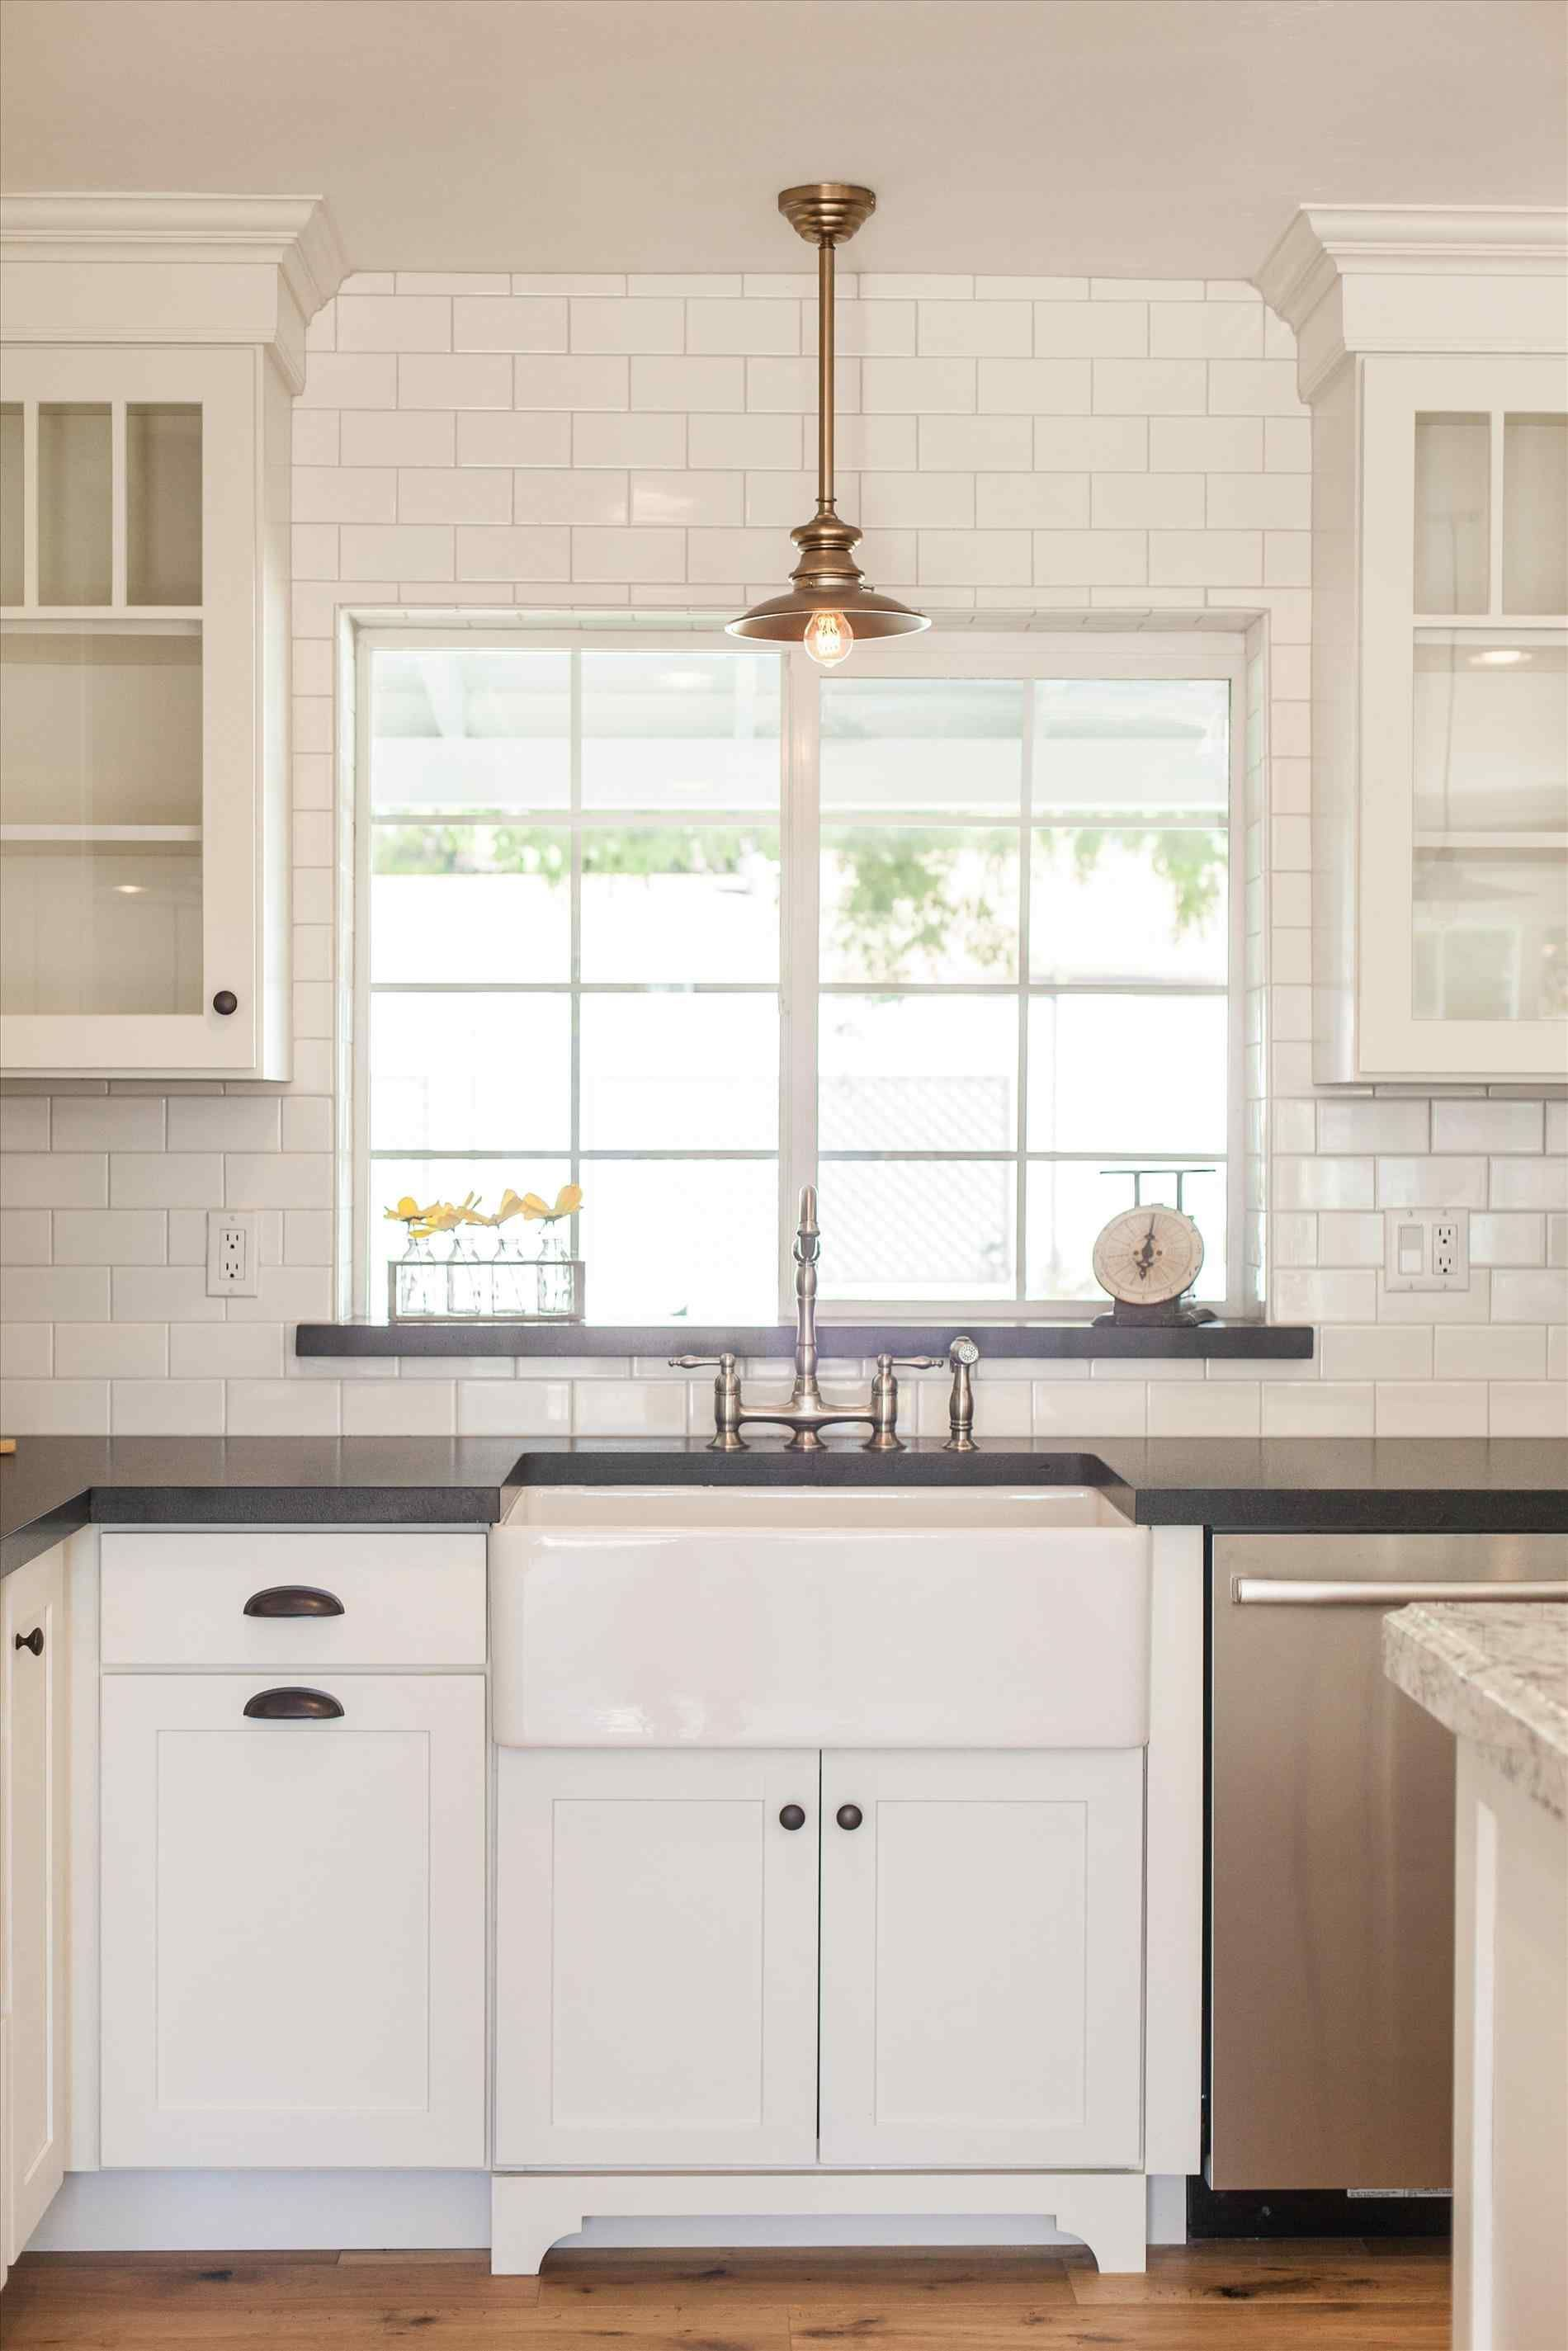 Tile Around Window In Kitchen Rustic Kitchen Sinks Small Kitchen Backsplash Kitchen Sink Window